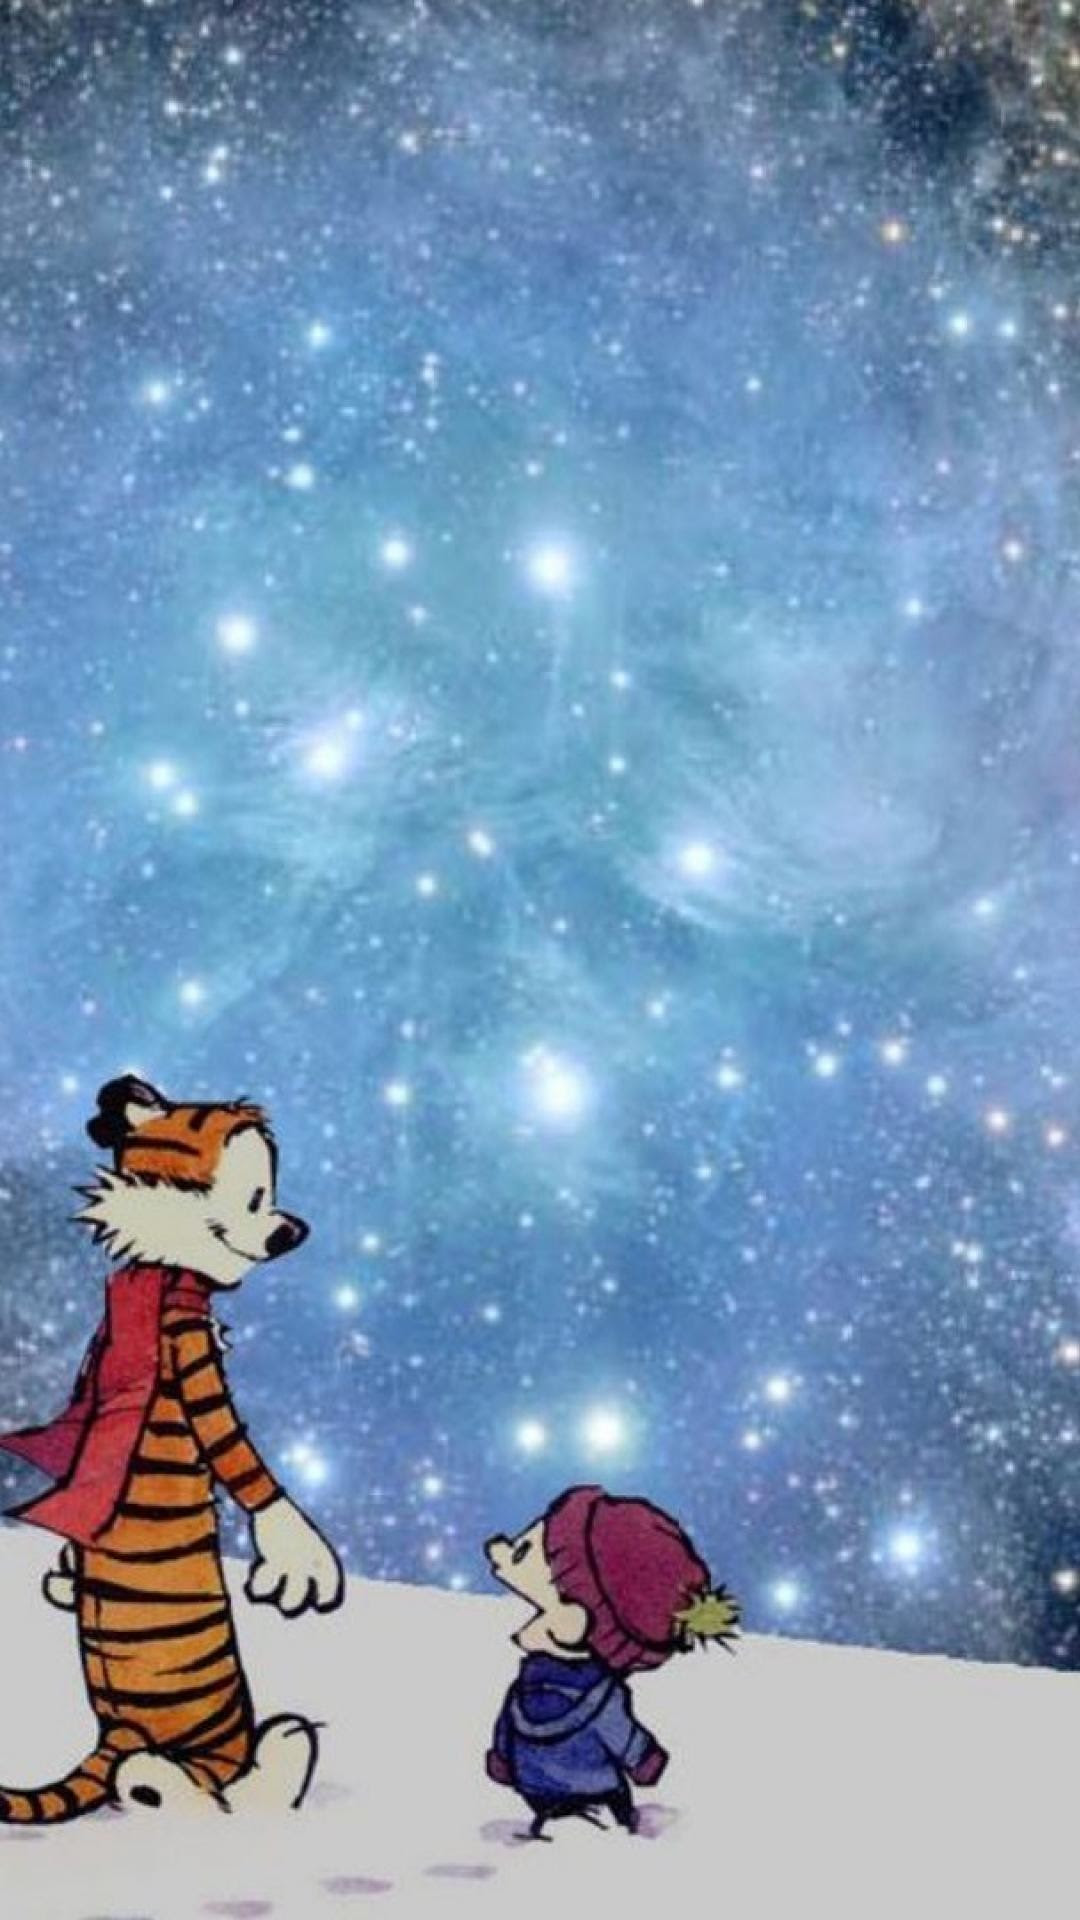 Calvin and Hobbes iPhone Wallpaper 74+ images